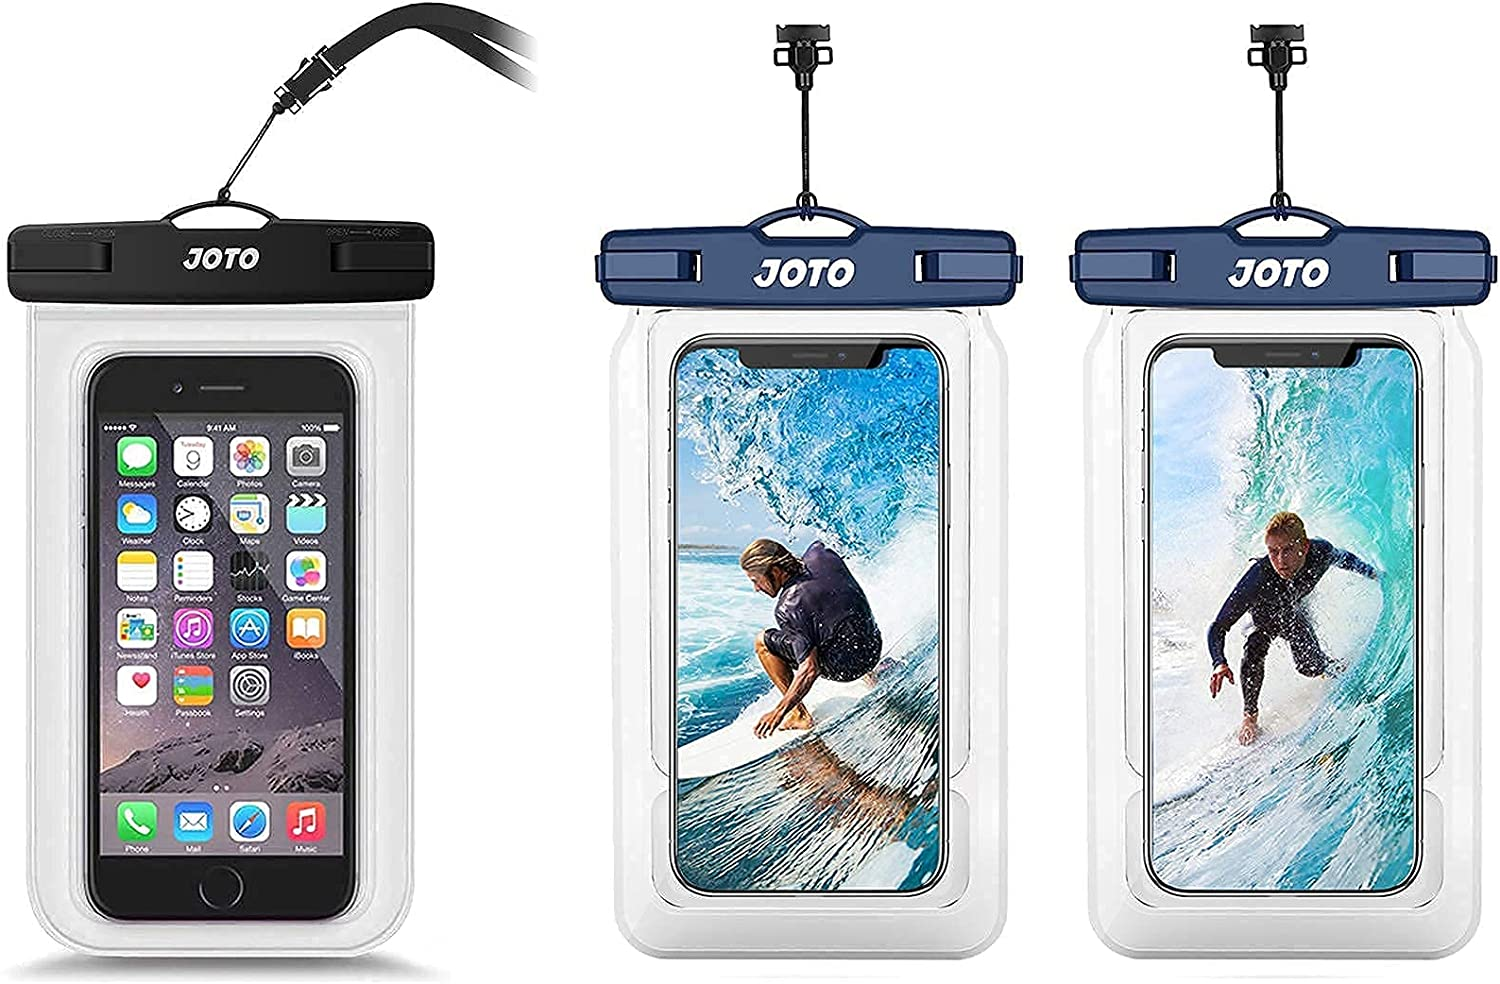 JOTO Universal Waterproof Pouch Cellphone Dry Bag Case Bundle with 【2 Pack】 JOTO Universal Floating Waterproof Phone Pouch